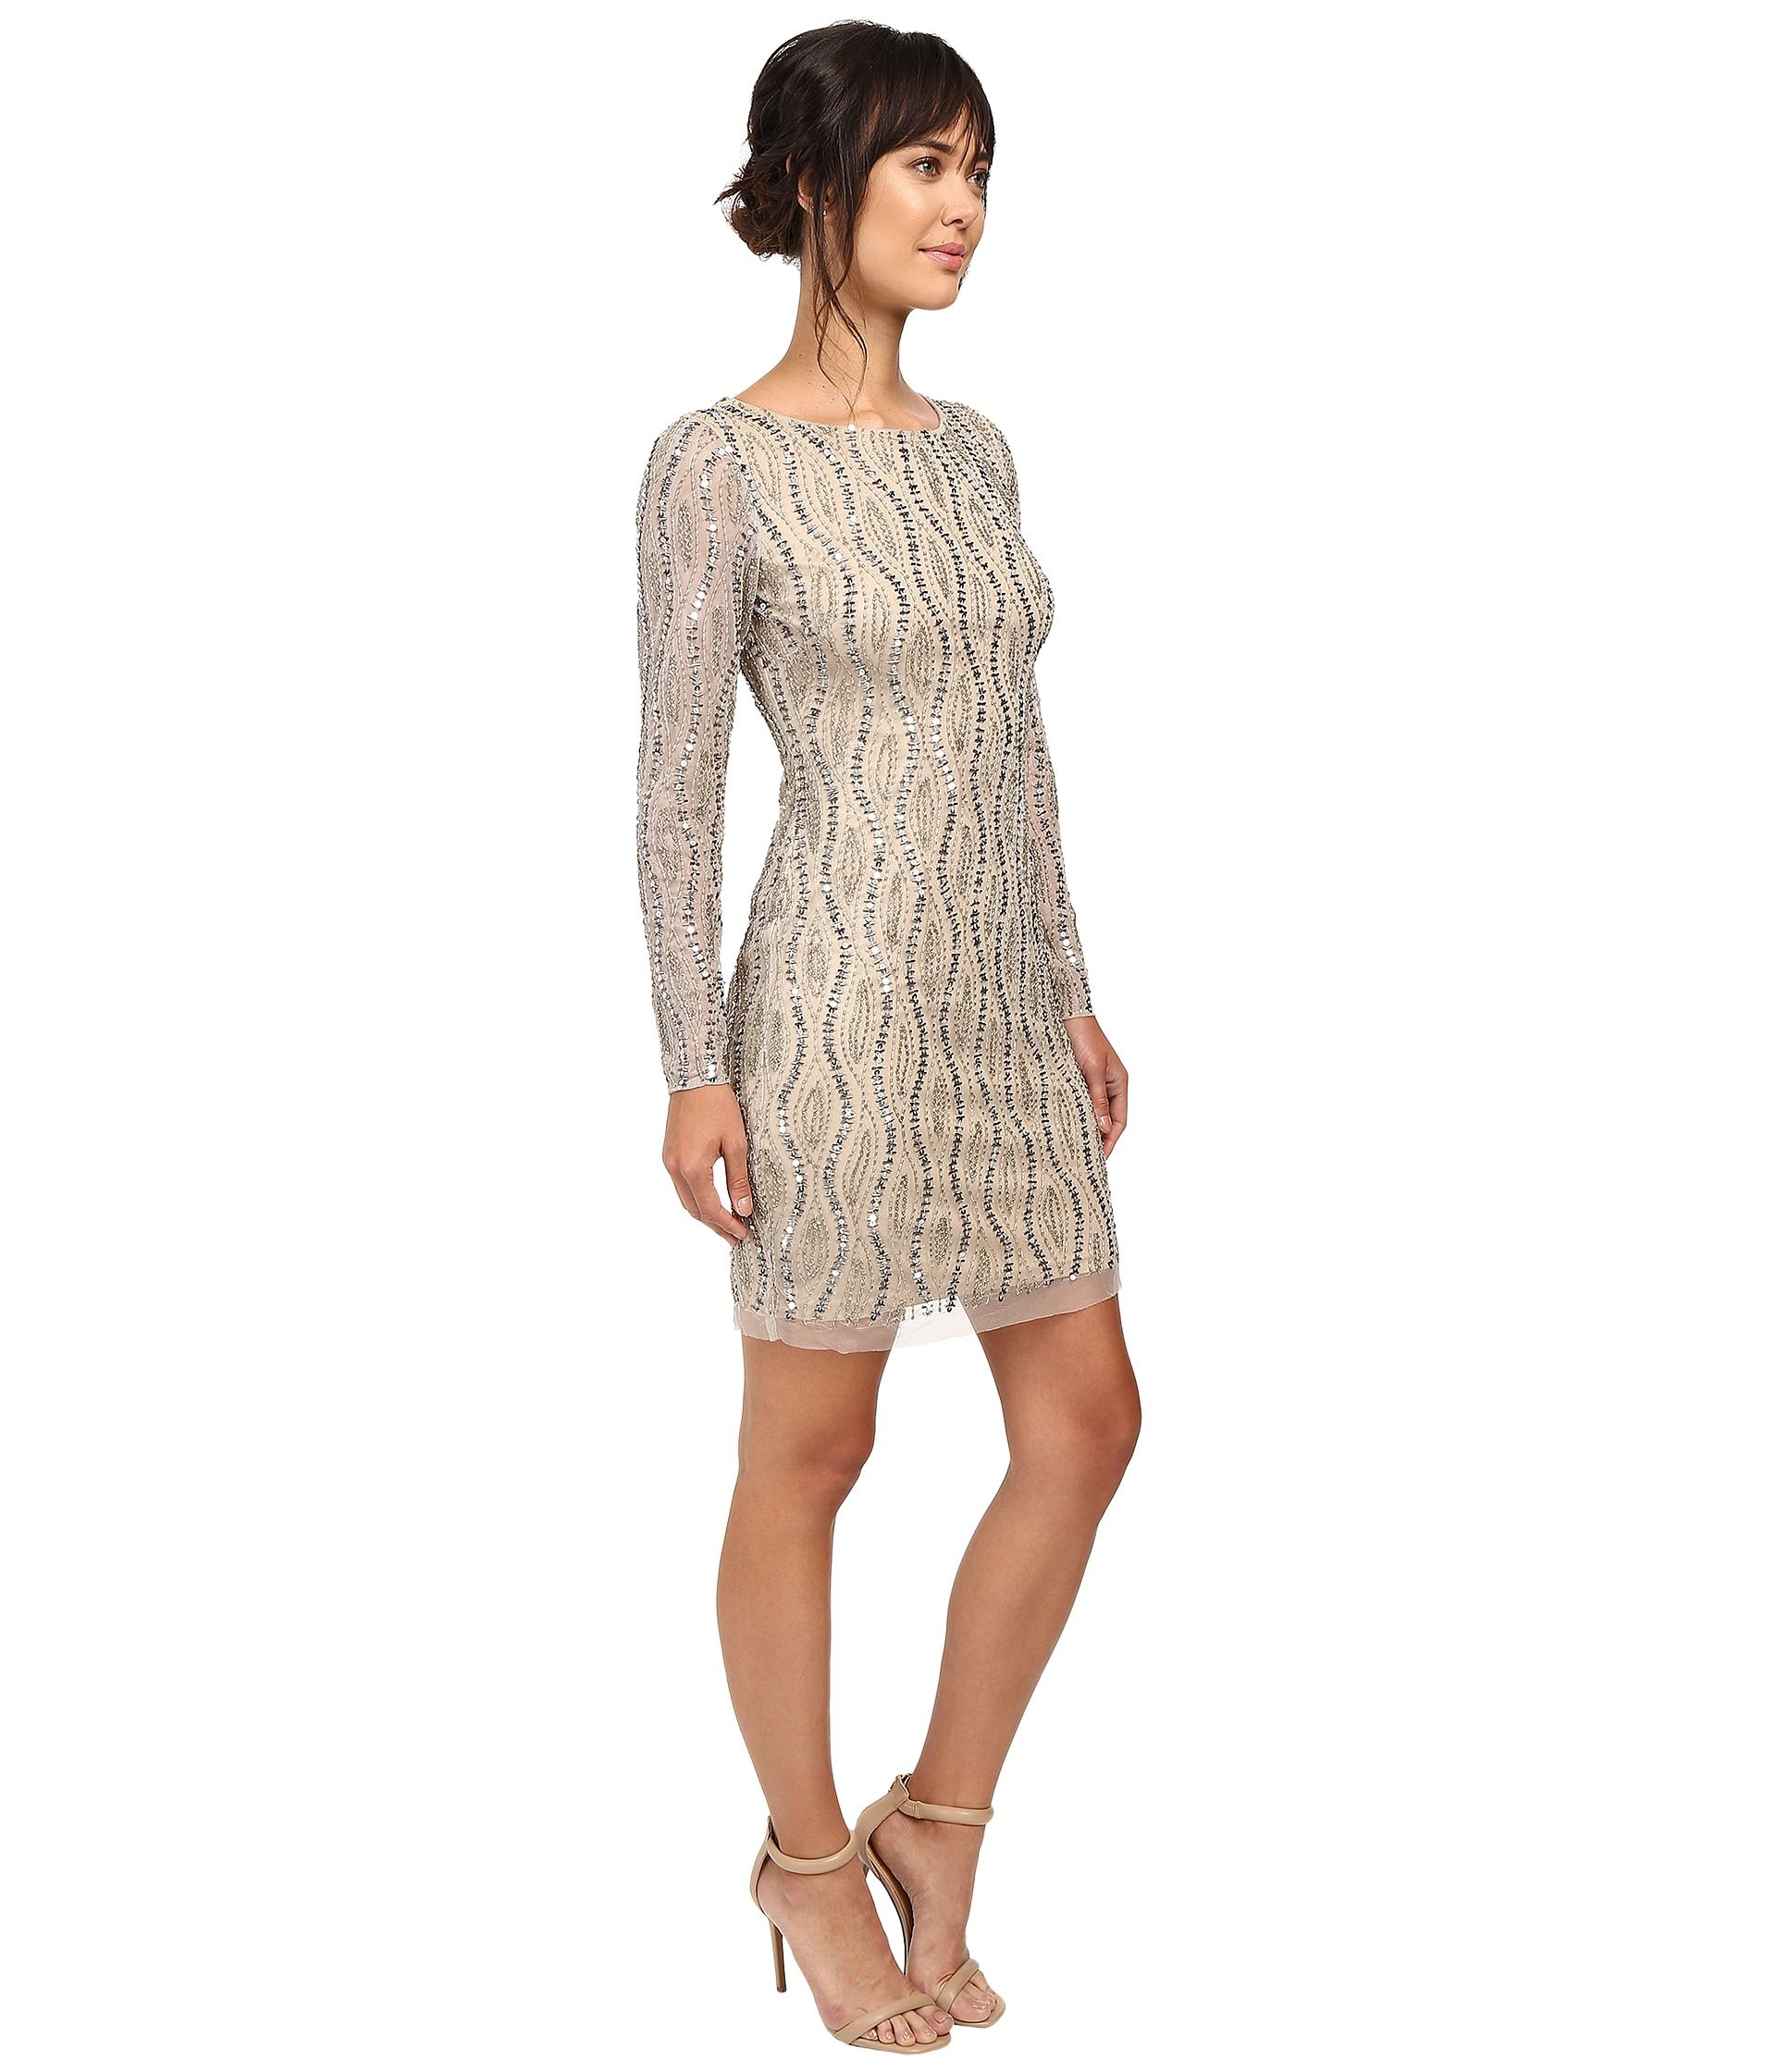 Awesome long sleeve cocktail dresses long sleeve cocktail